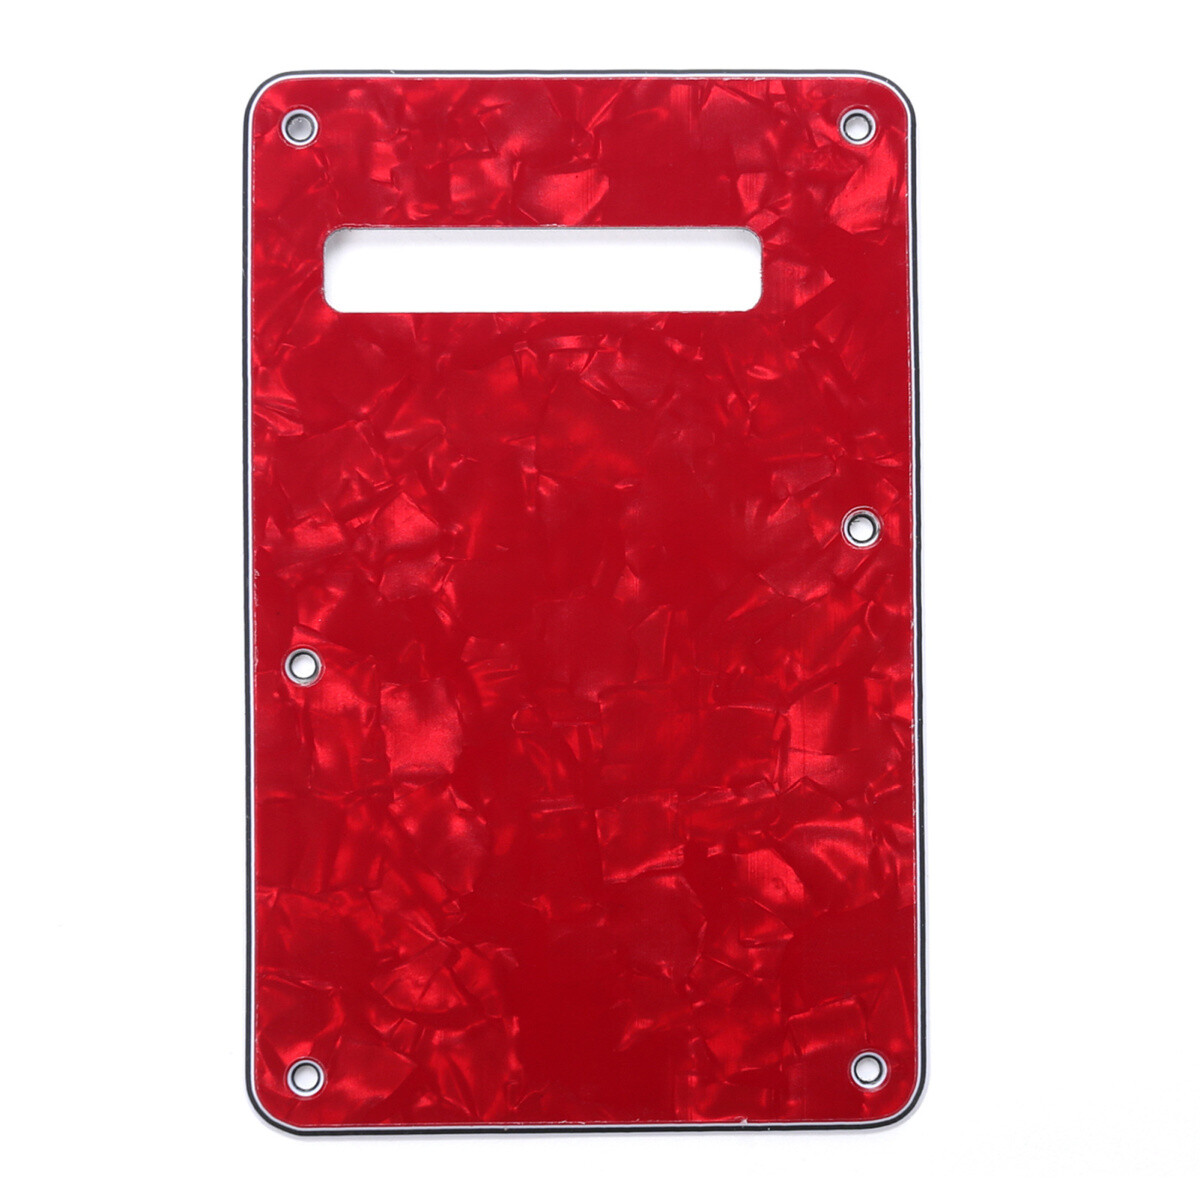 Brio Pearl Red Modern Style Back Plate Tremolo Cover 4 ply - US/Mexican Fender®Strat® Fit